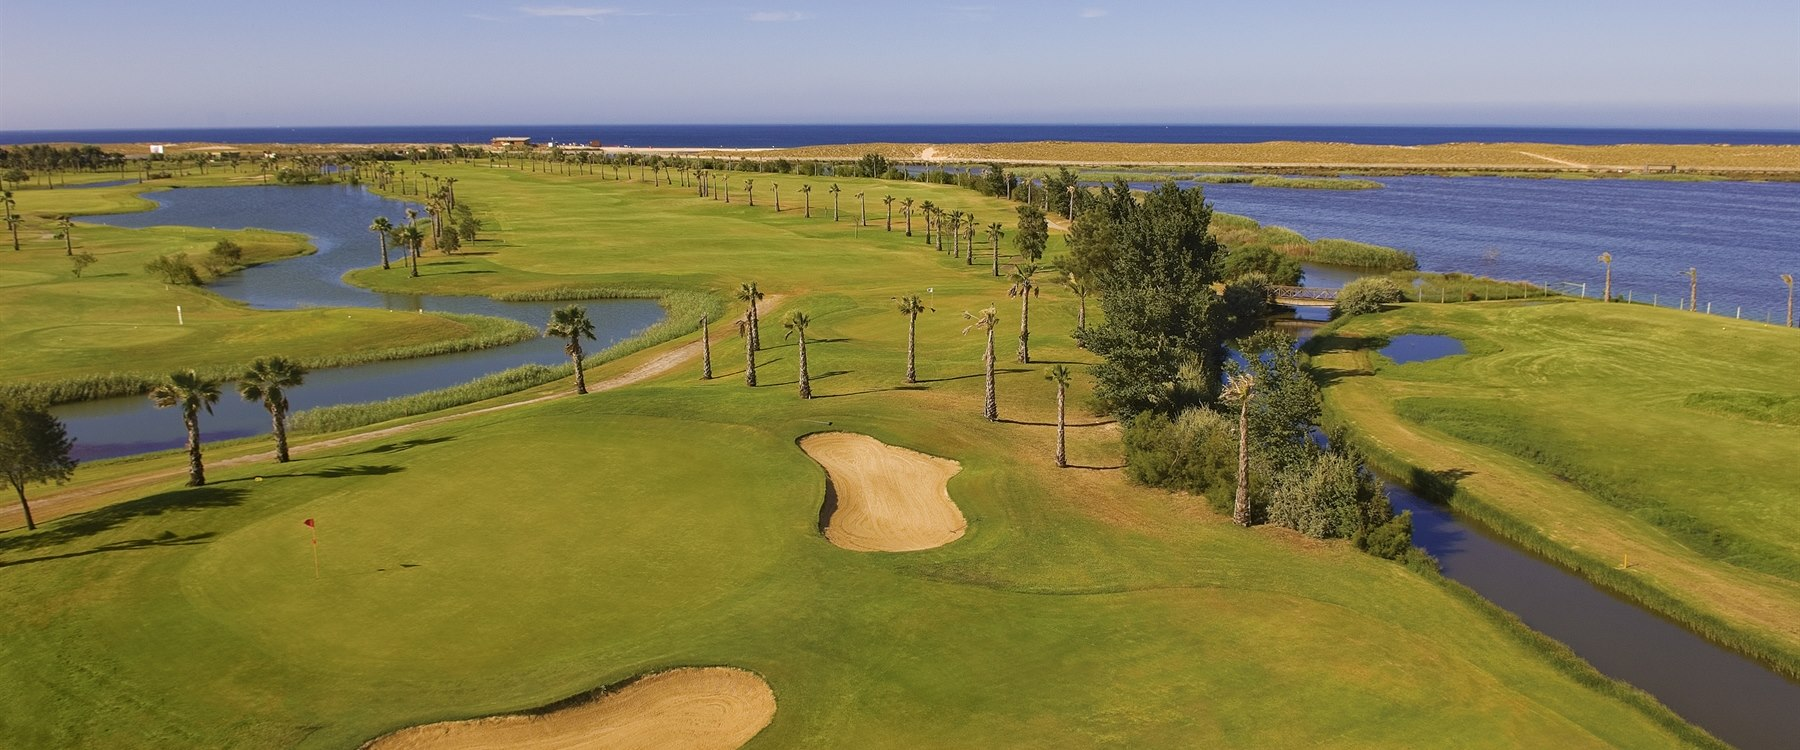 Salgados Golf Course at Vidamar Resort Algarve